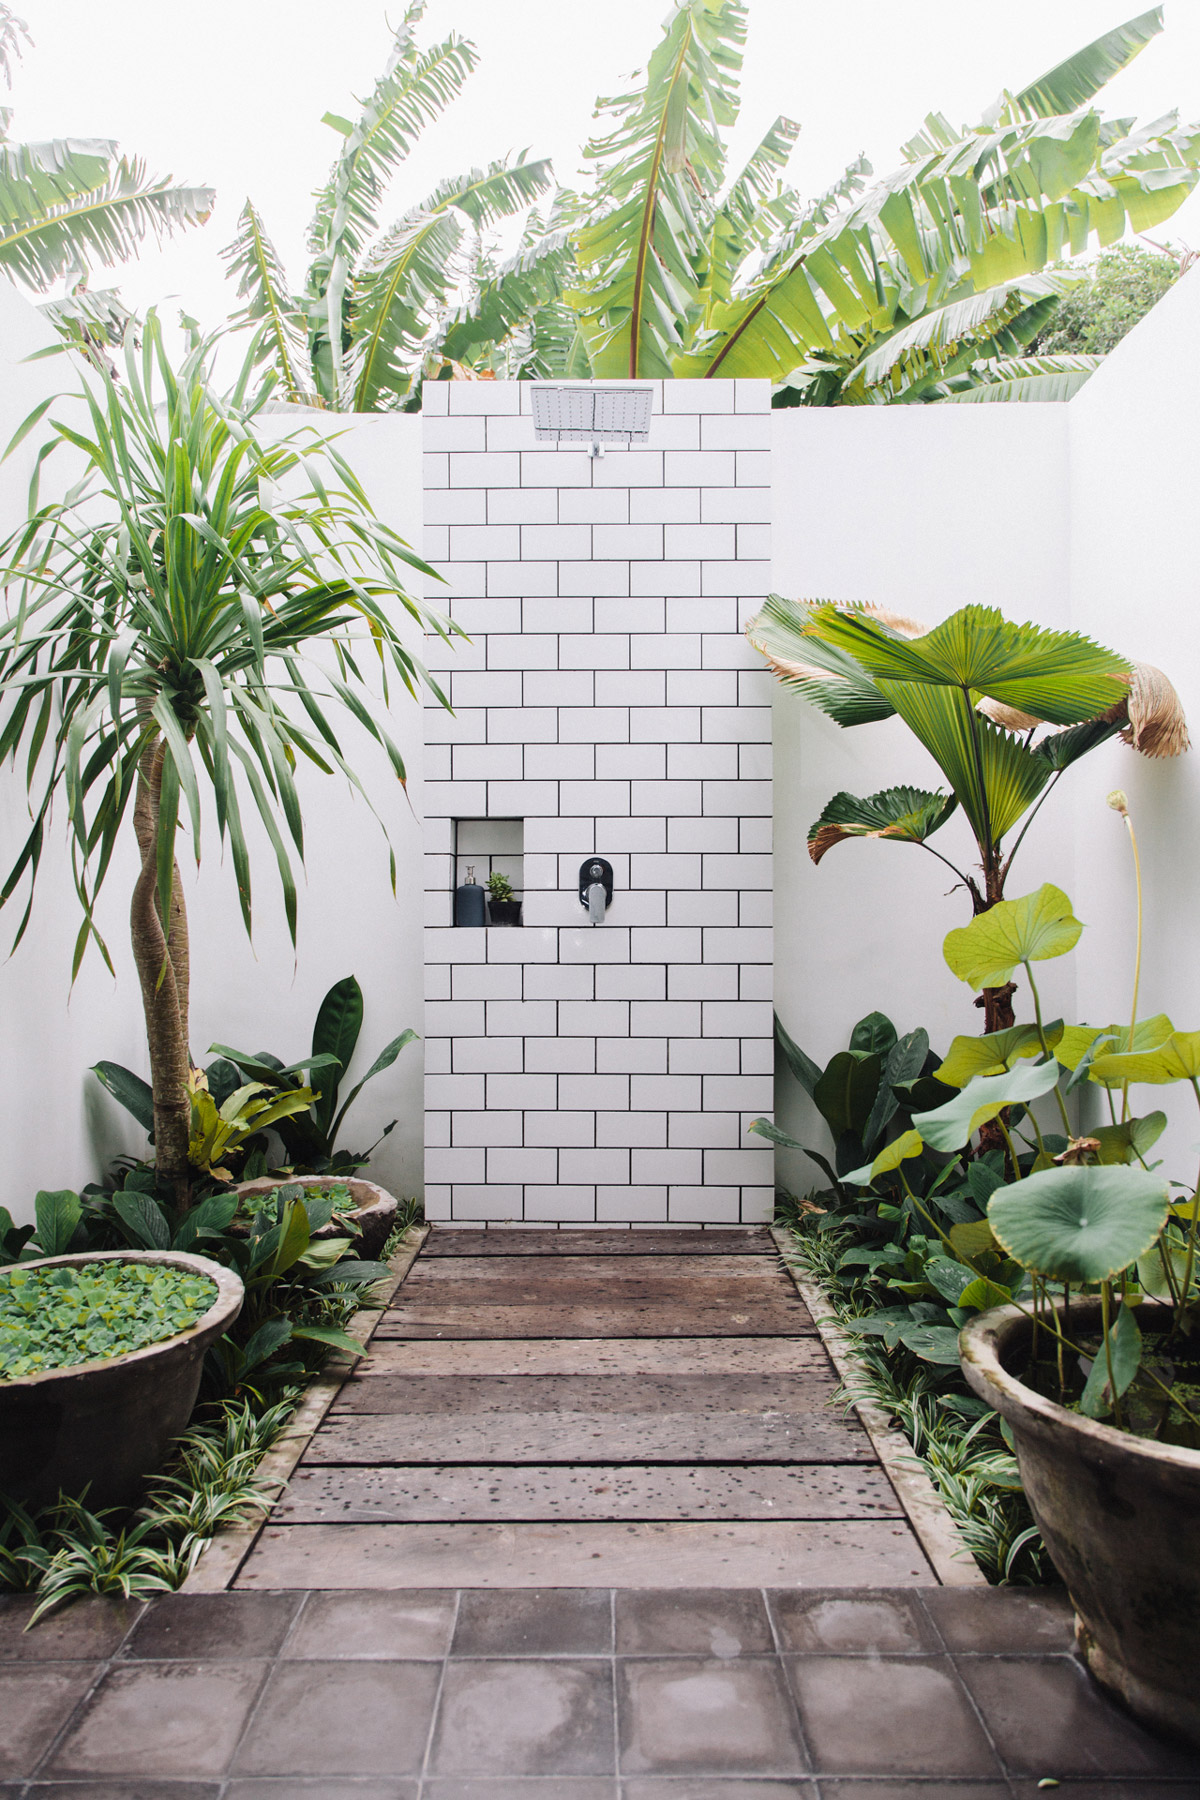 Tiled Plinth Potted Plants Outdoor Shower Fixtures - 50 stunning outdoor shower spaces that take you to urban paradise